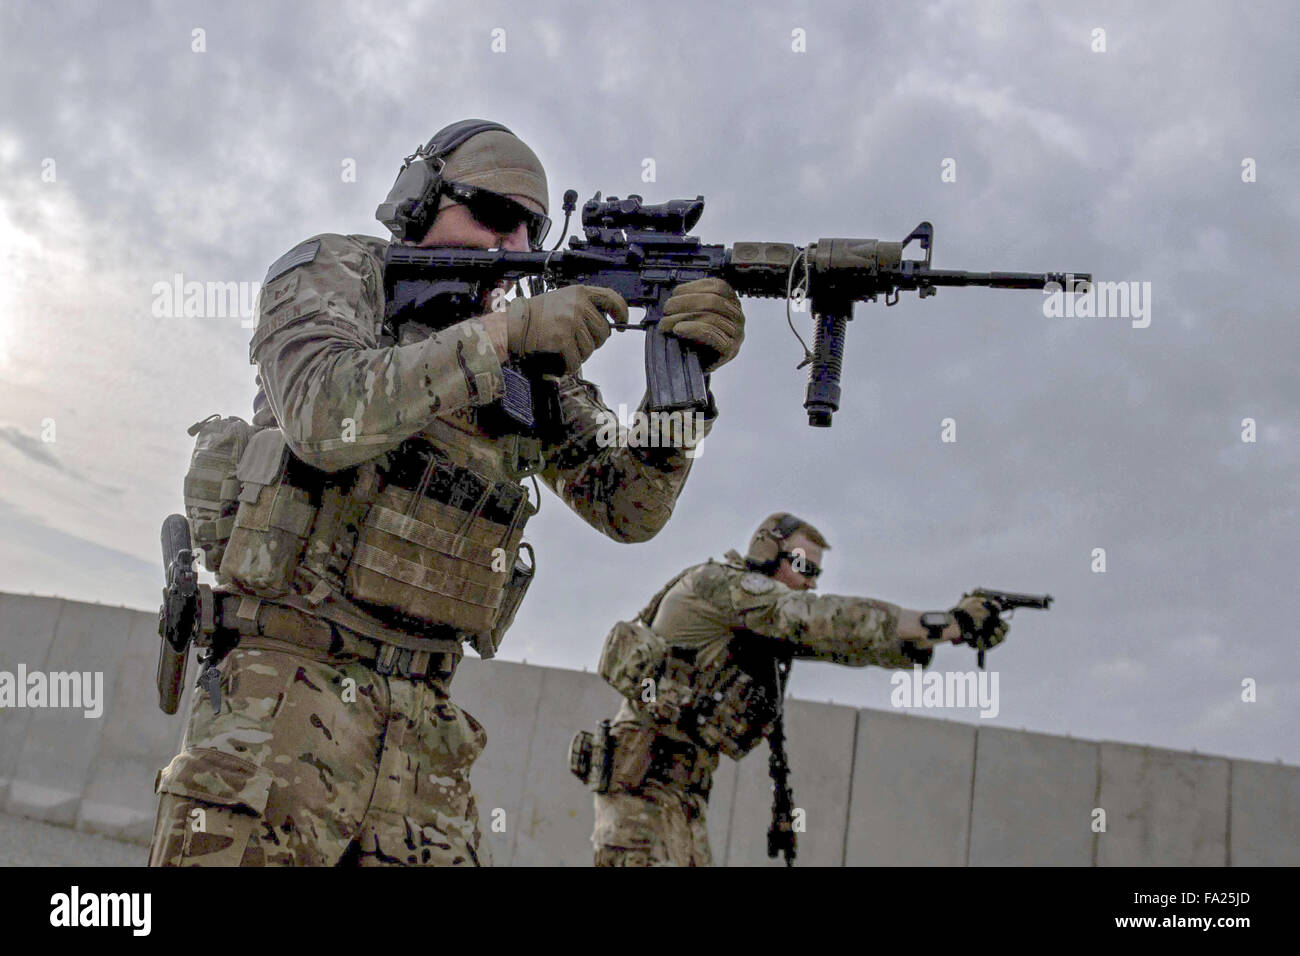 U.S. service members zero-in their weapons at a range - Stock Image